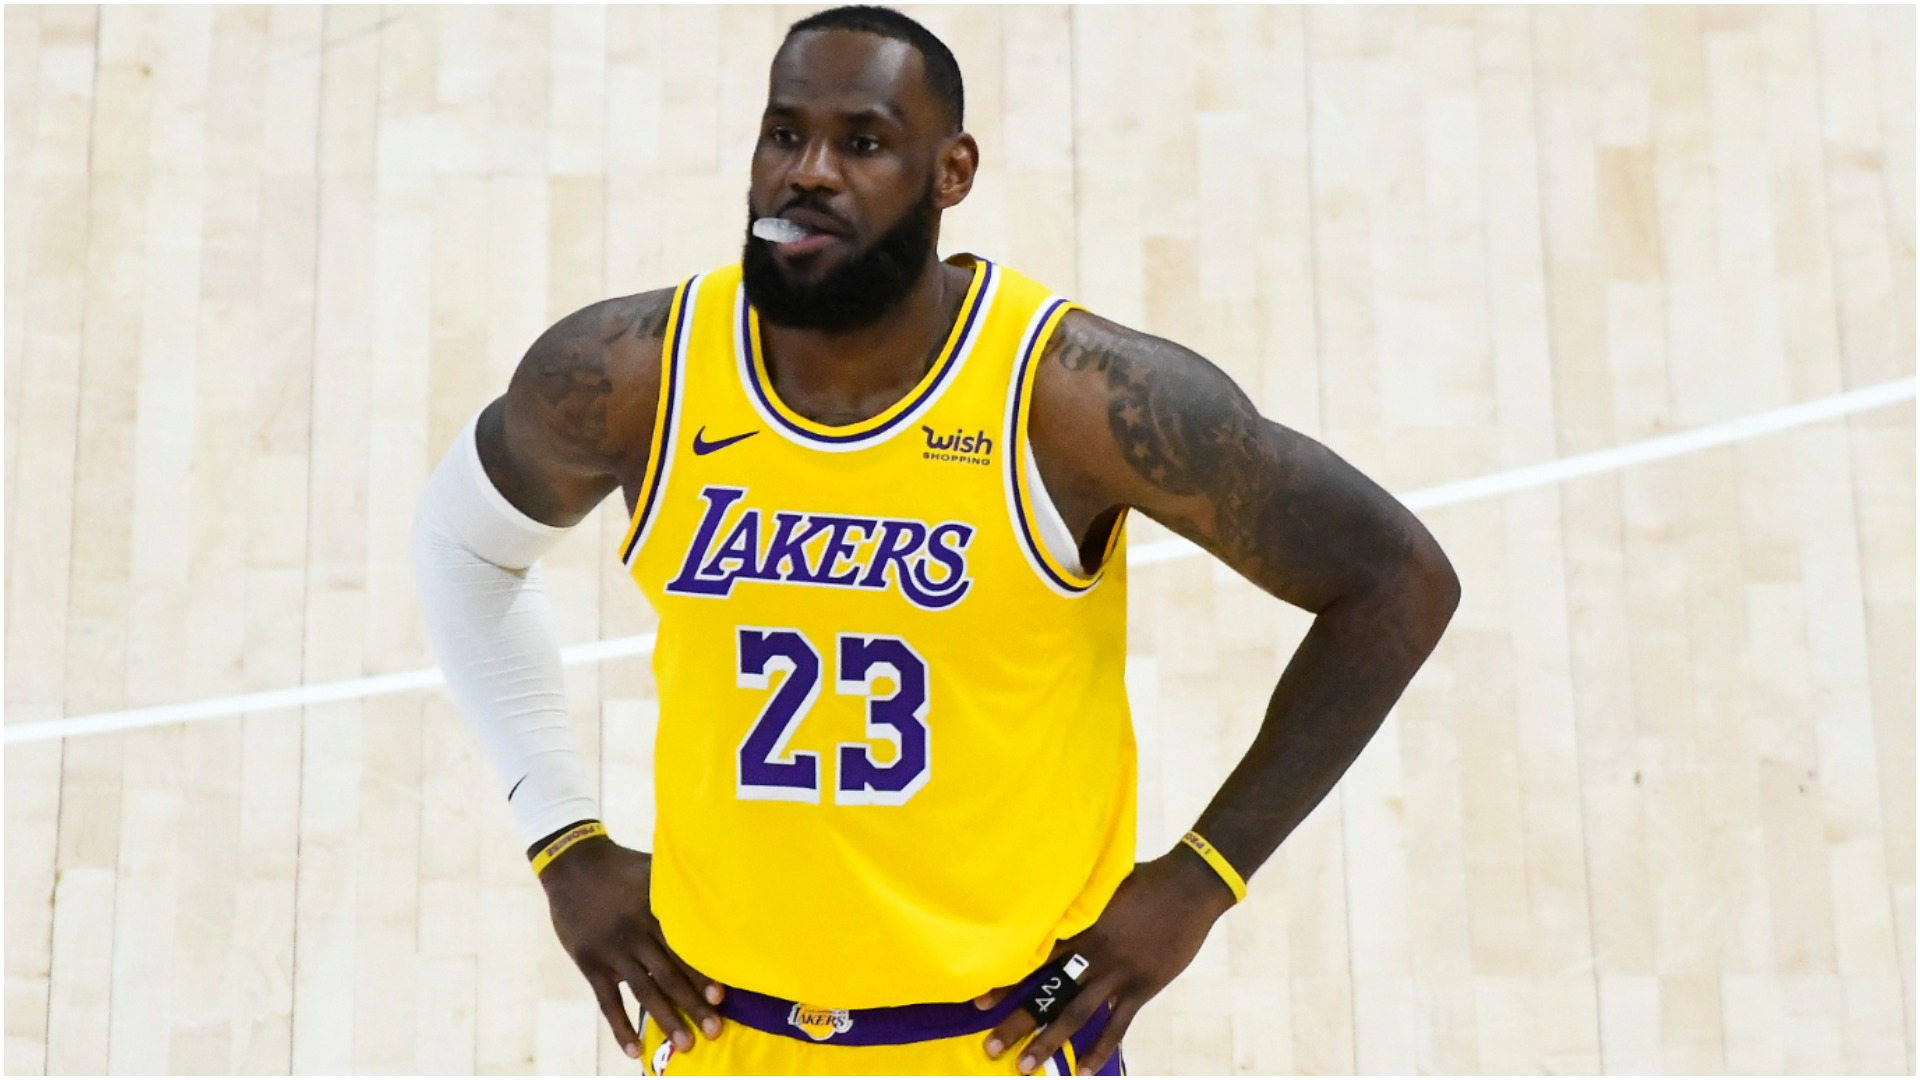 LeBron and Lakers dealing with 'tough stretch' as Jazz set NBA record